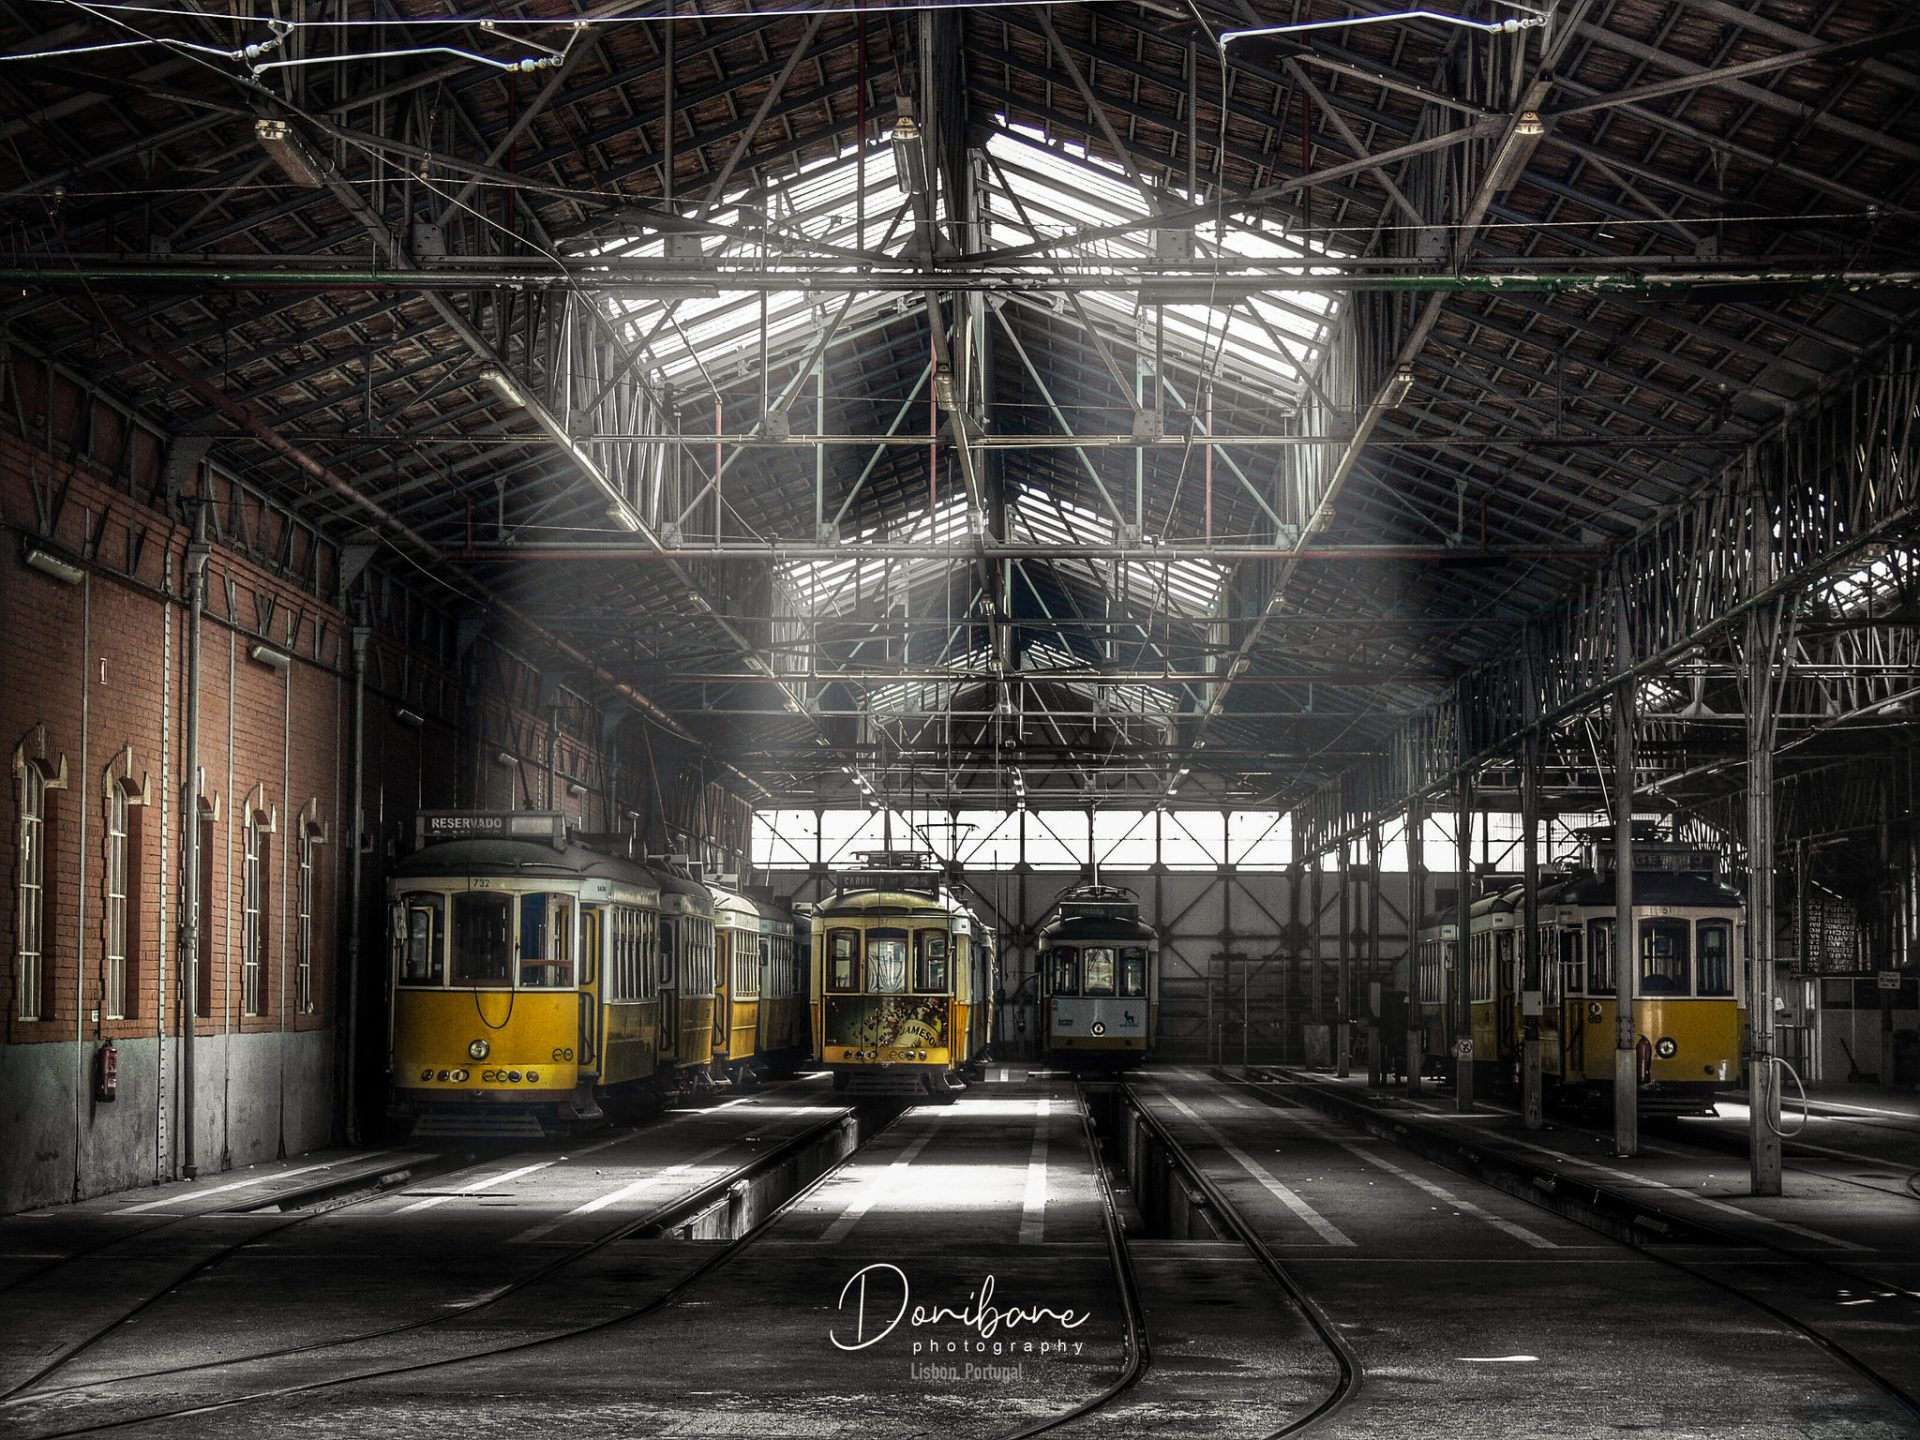 Tren Station in Lisbon, Portugal, by Donibane